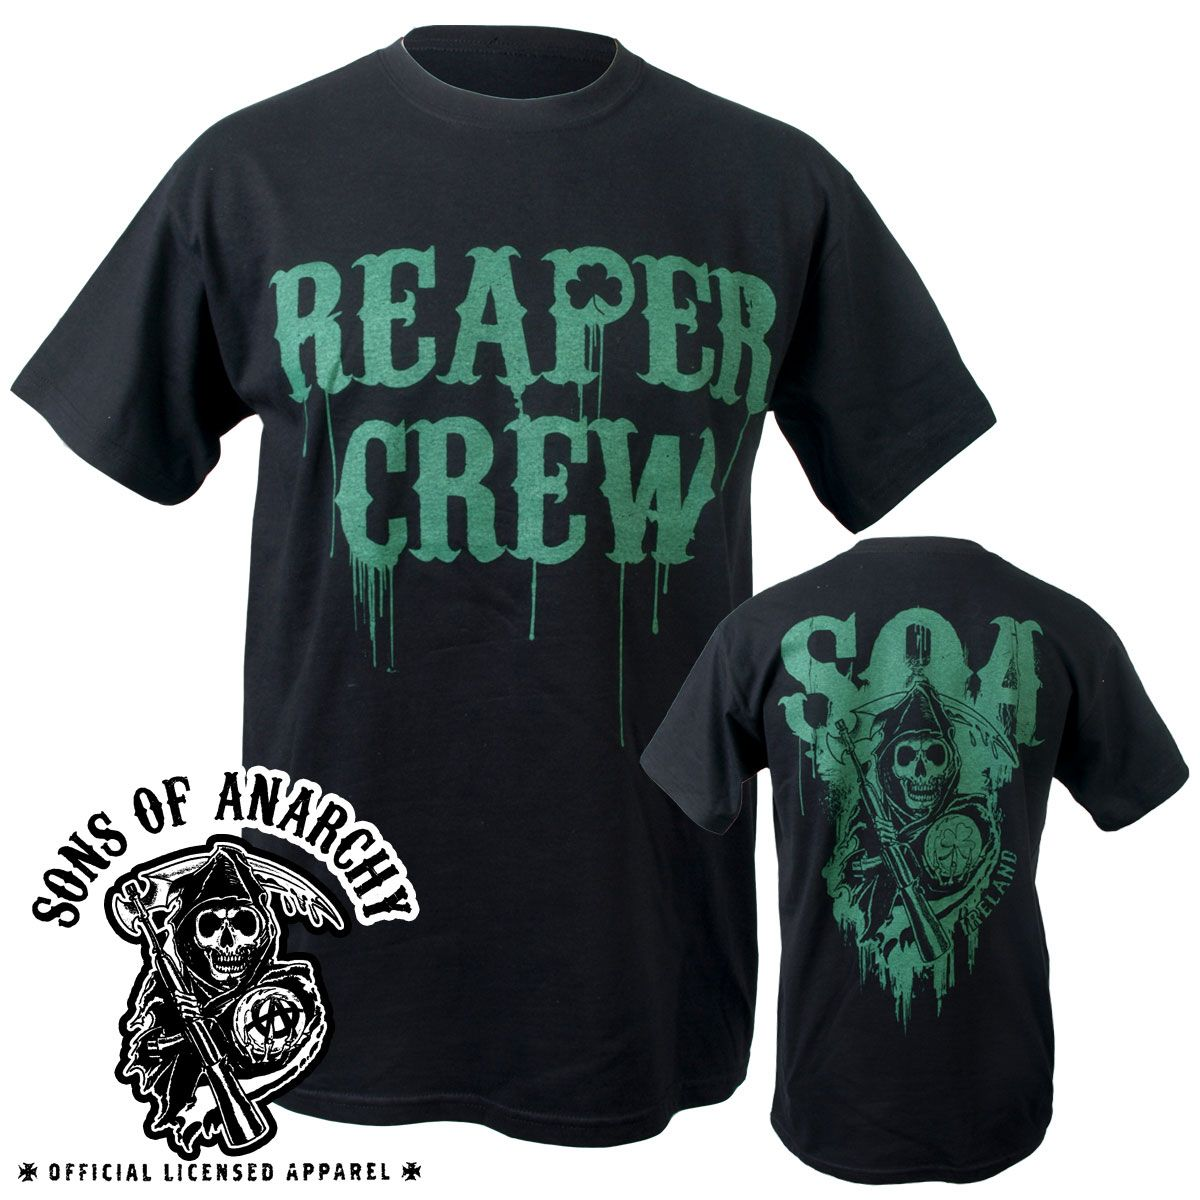 Baby Kleinkind Reaper Crew T Shirt Sons Of Anarchy Sons Of Anarchy T Shirts